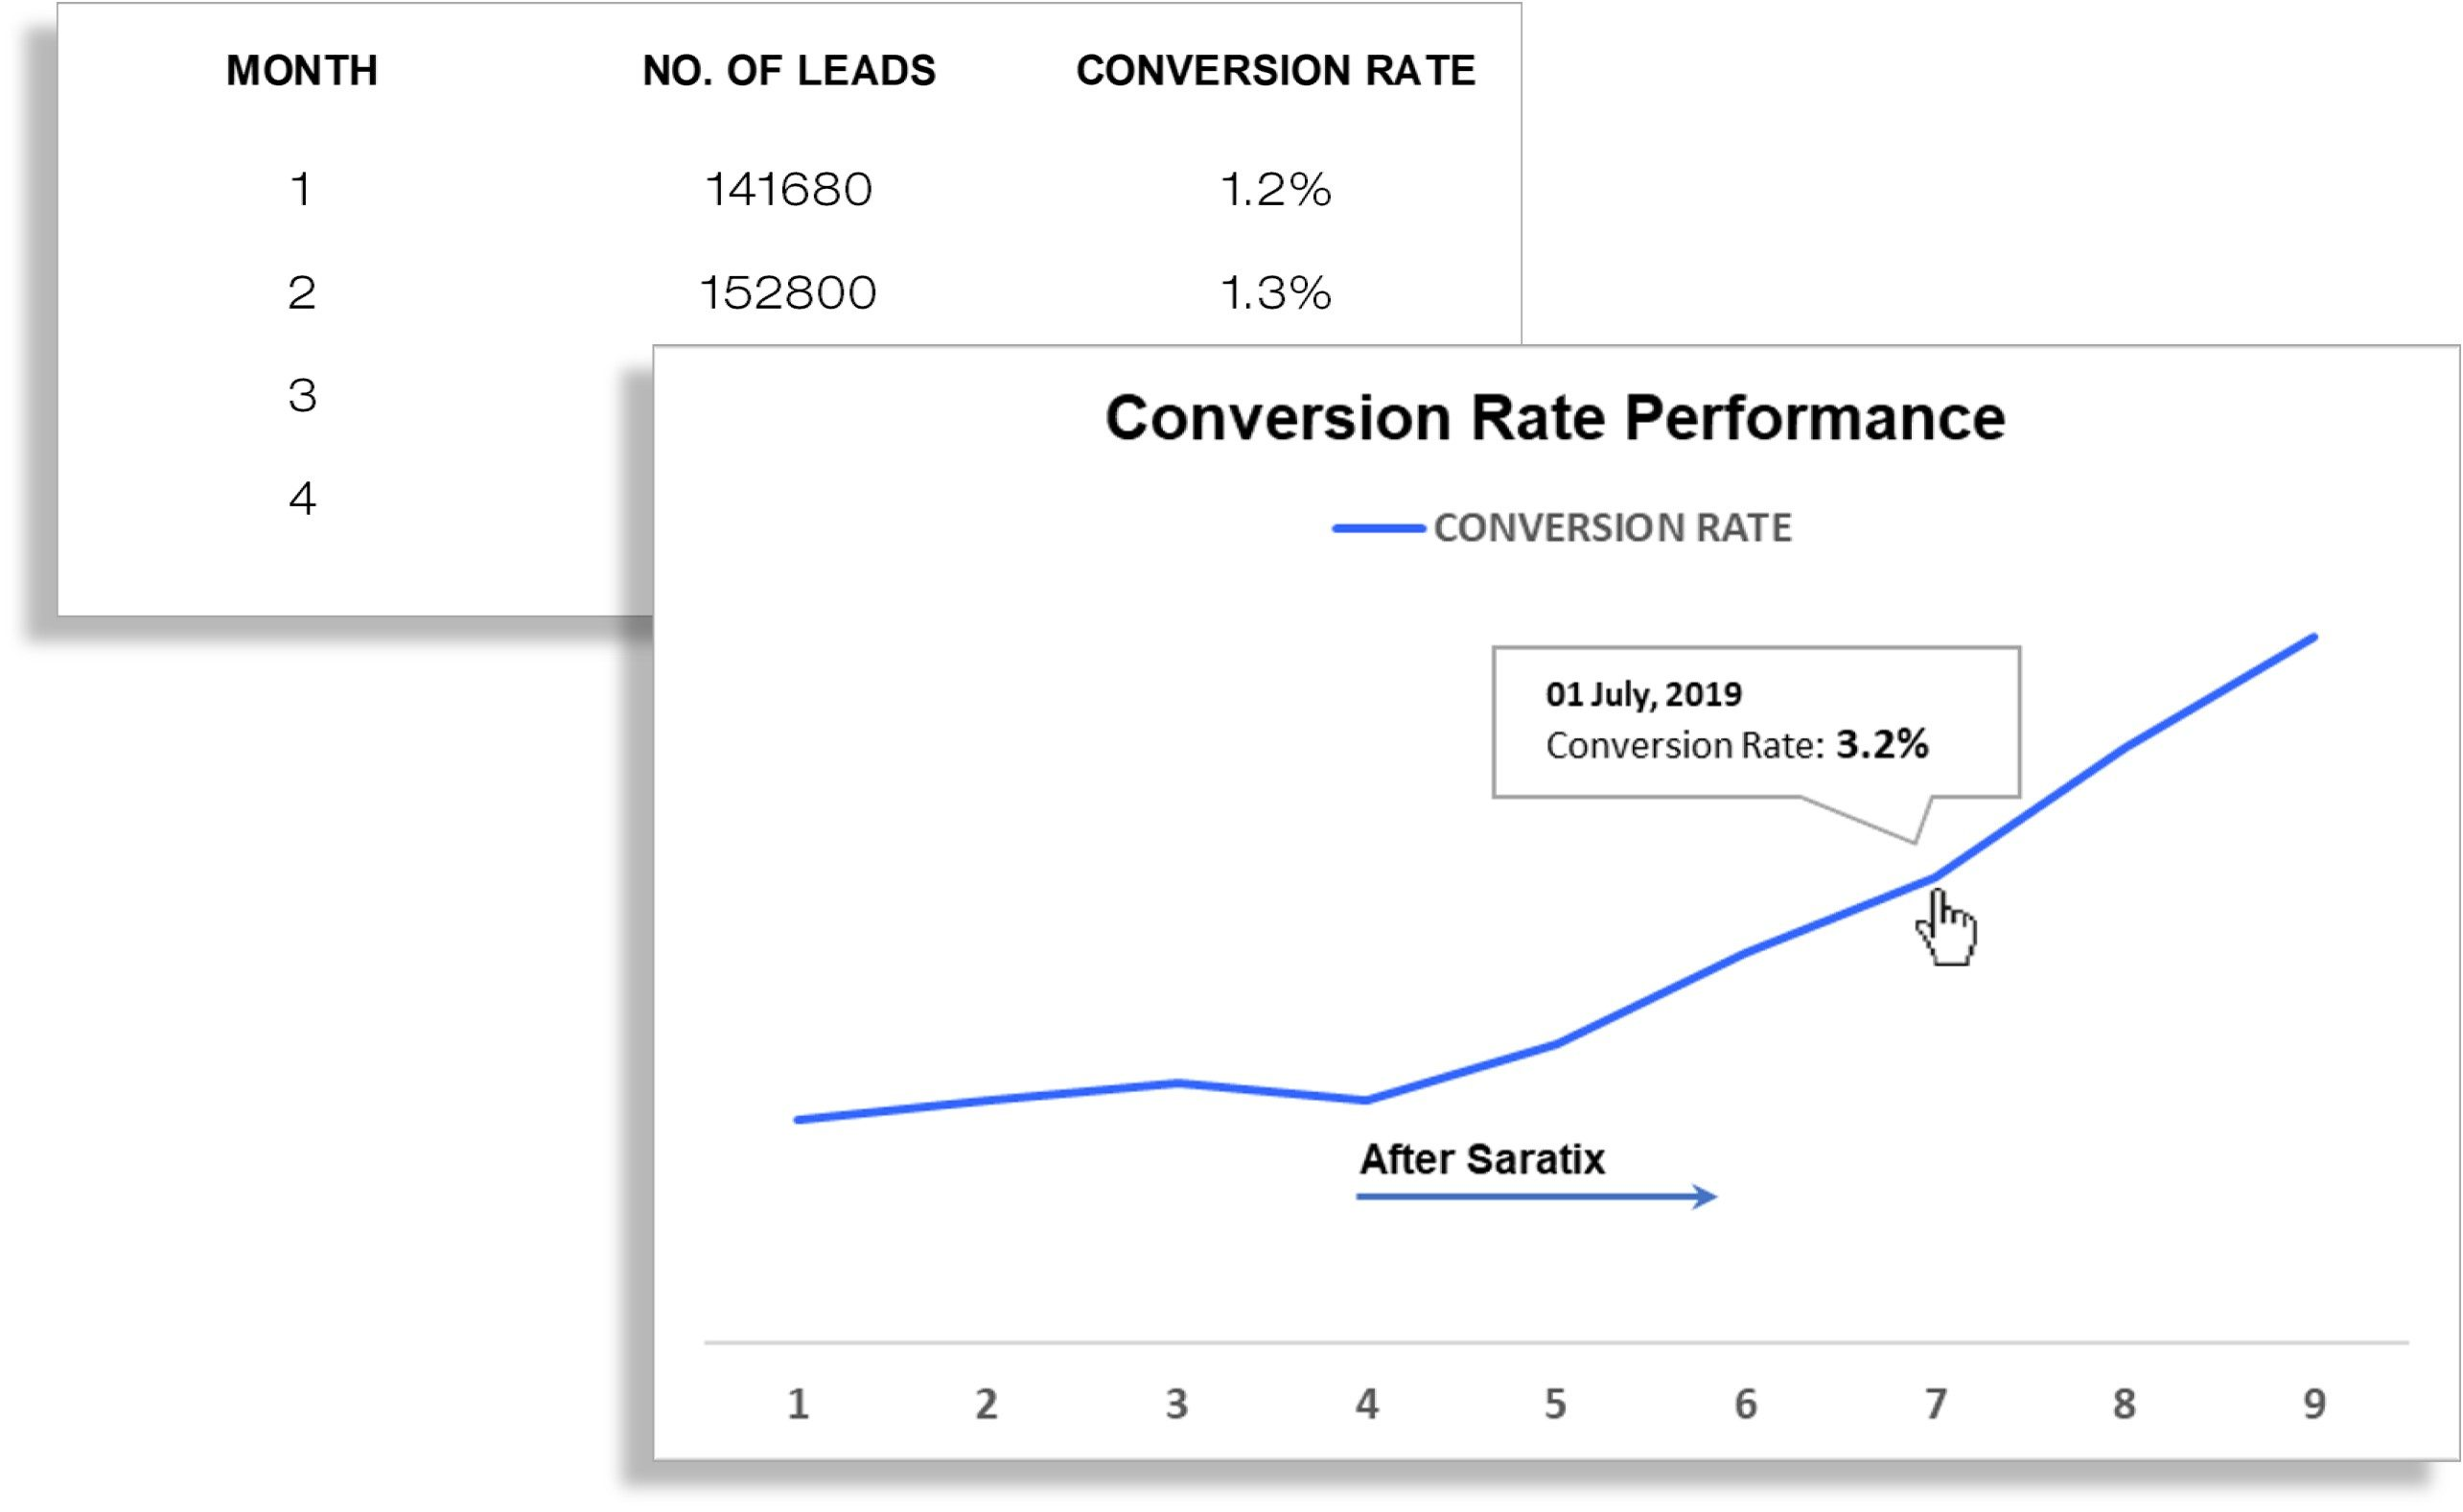 2. Conversion Rate